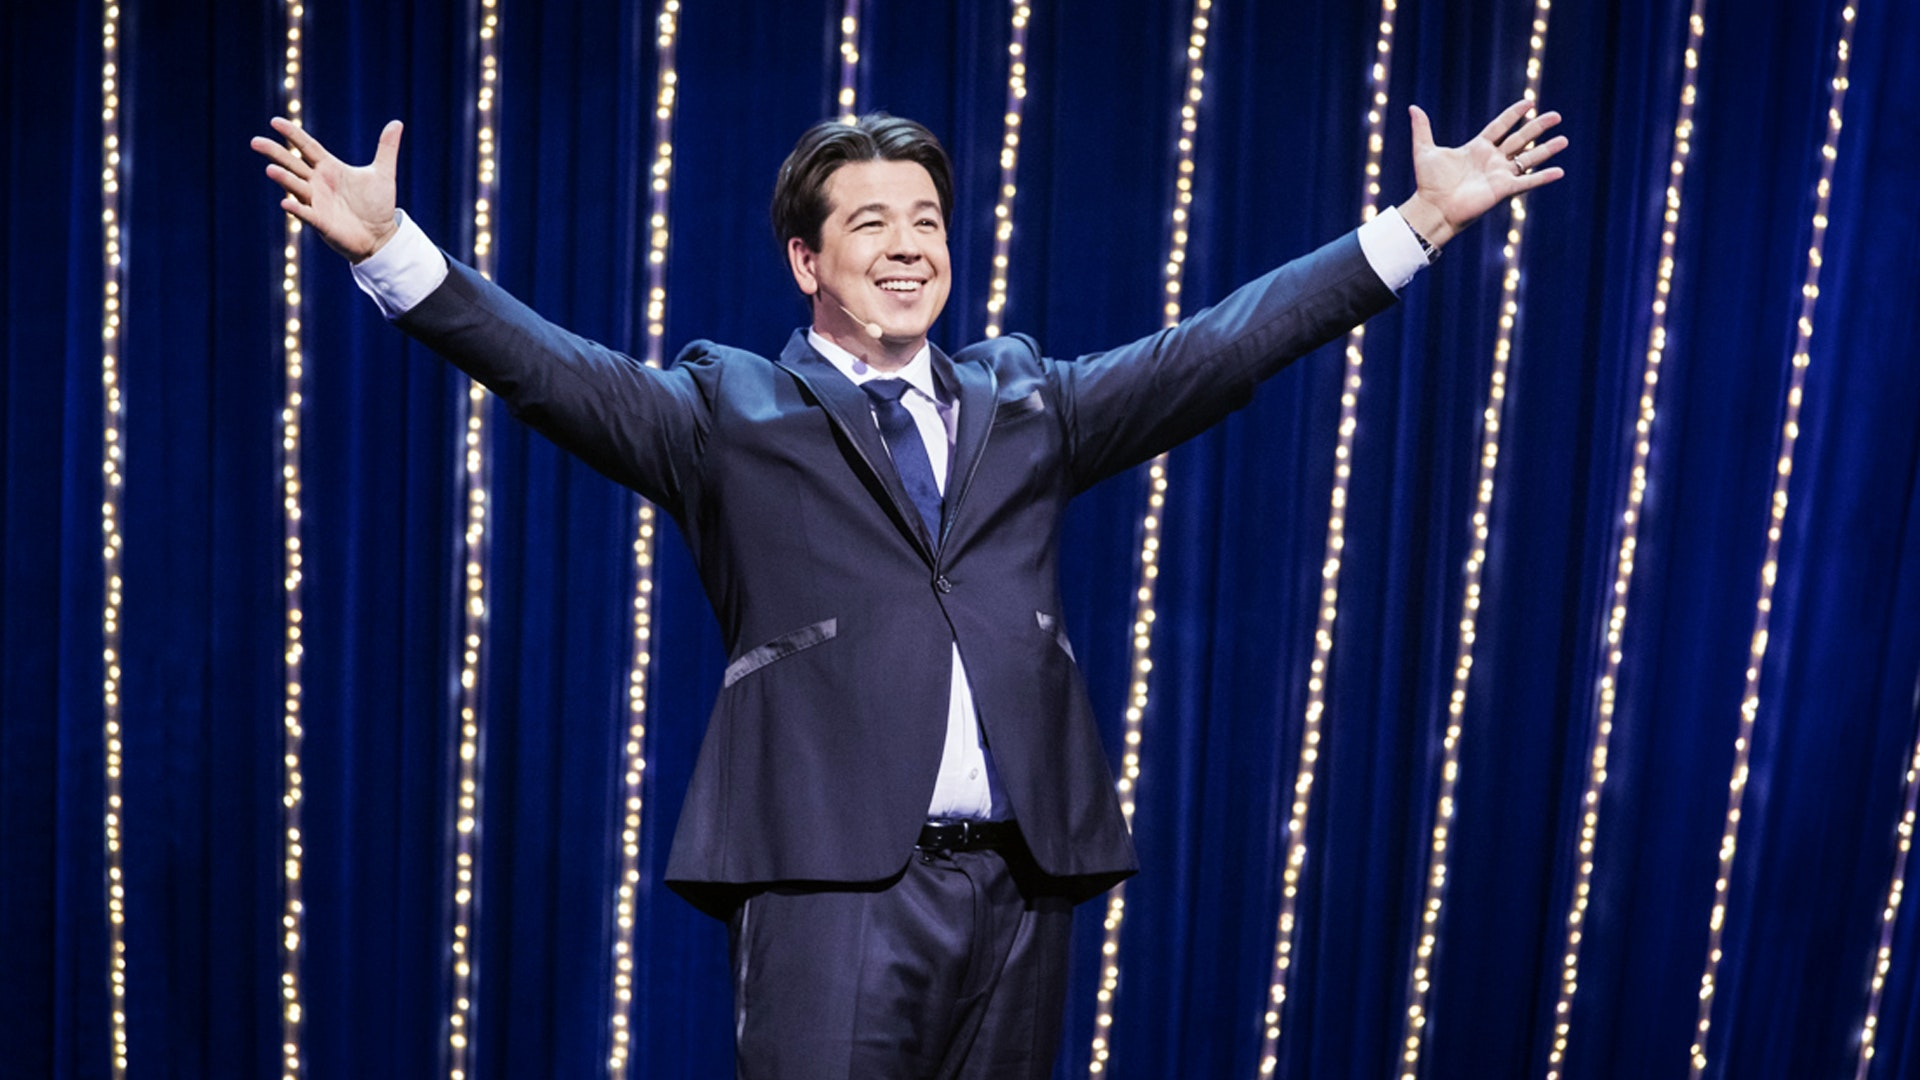 Michael McIntyre is coming back on our screens with his much loved show